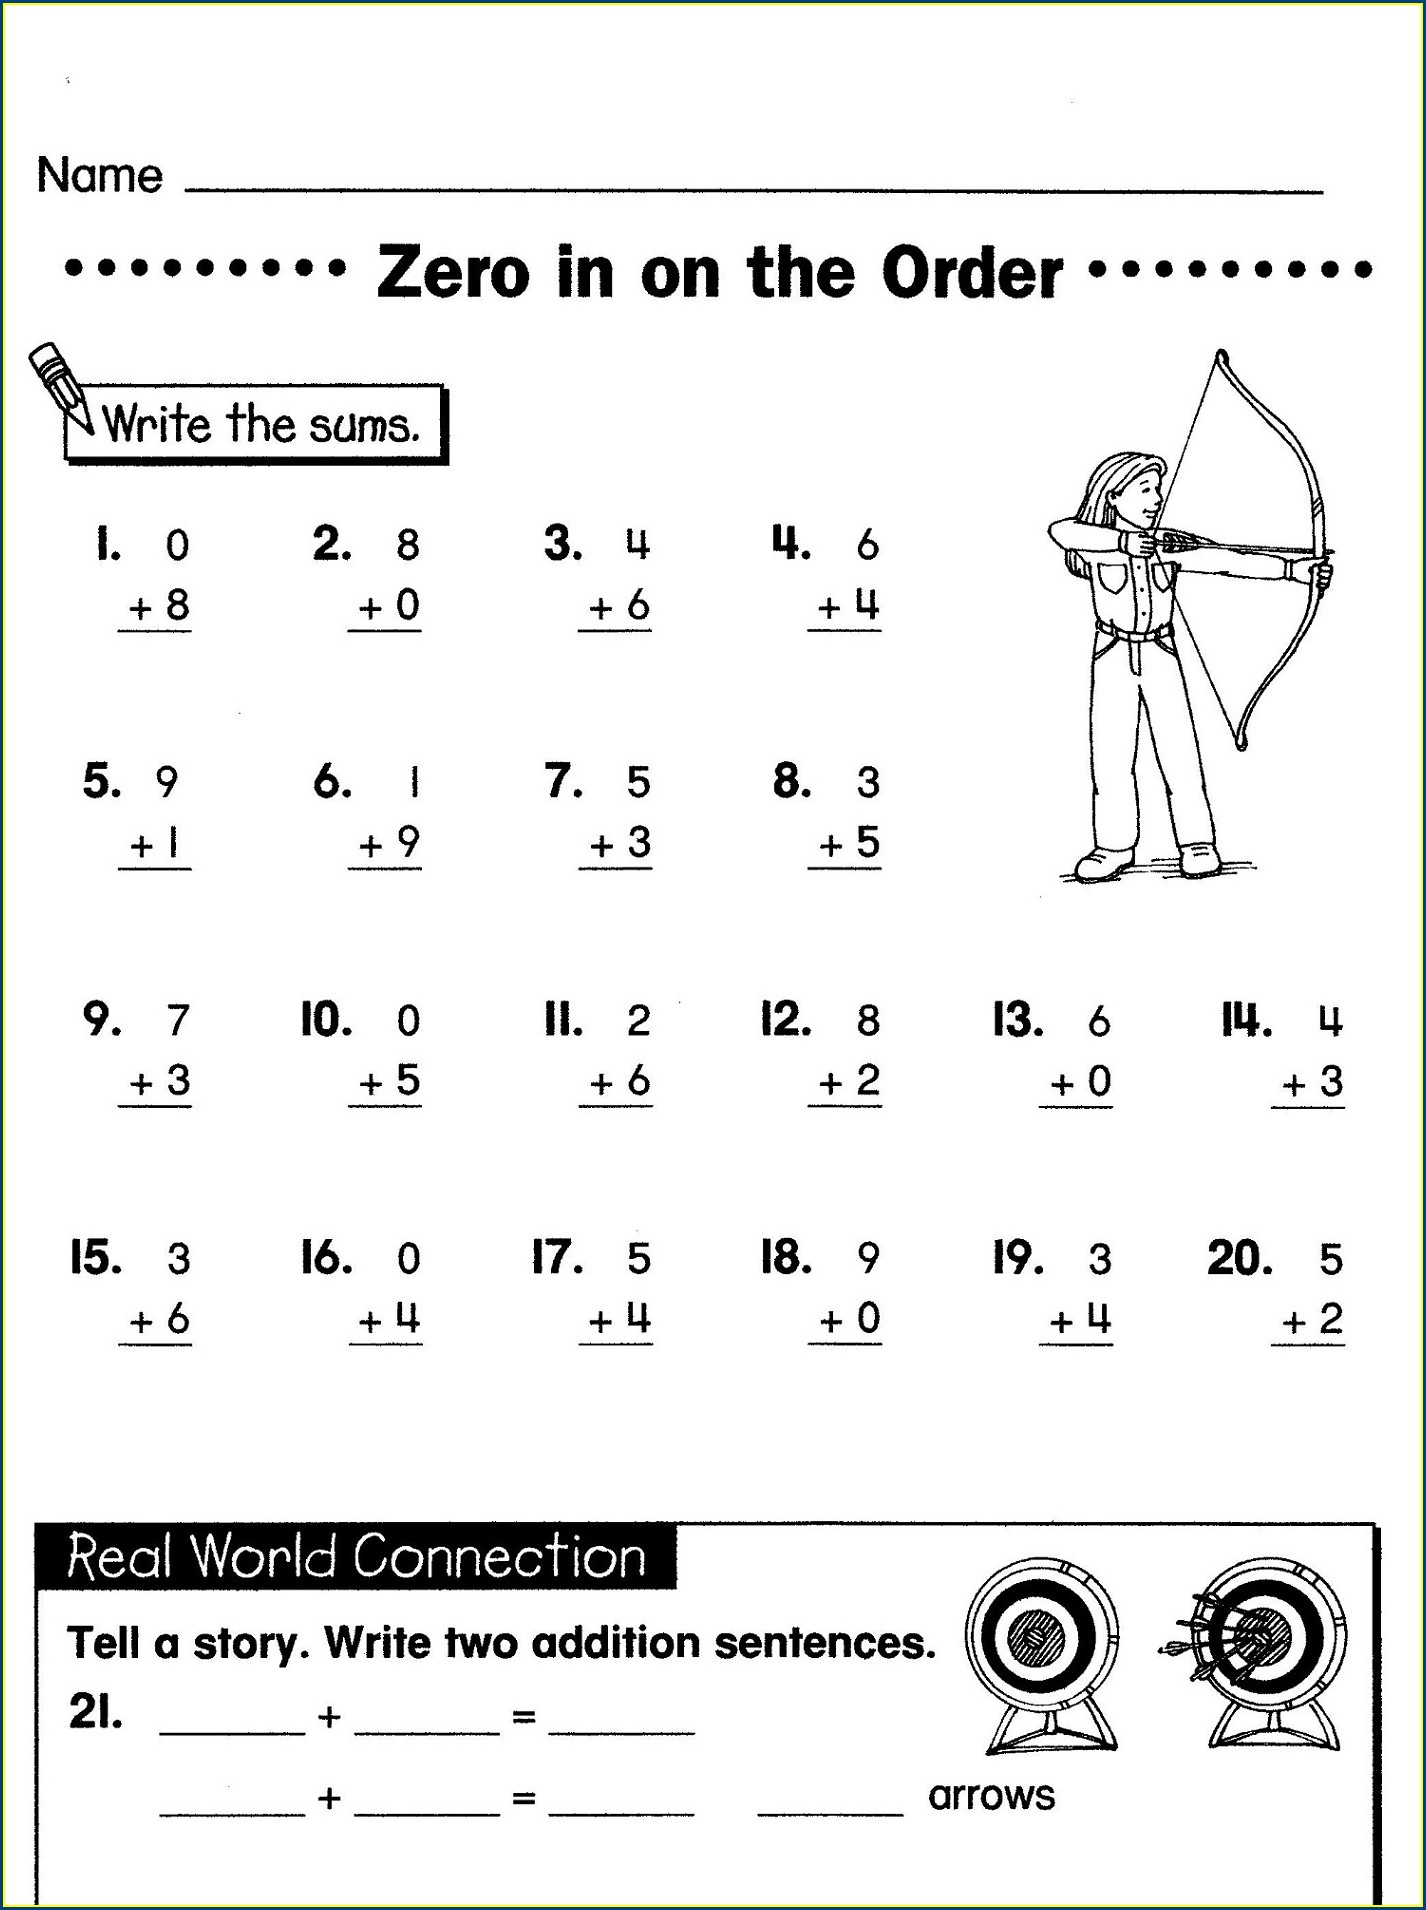 5th Grade Physical Science Worksheets